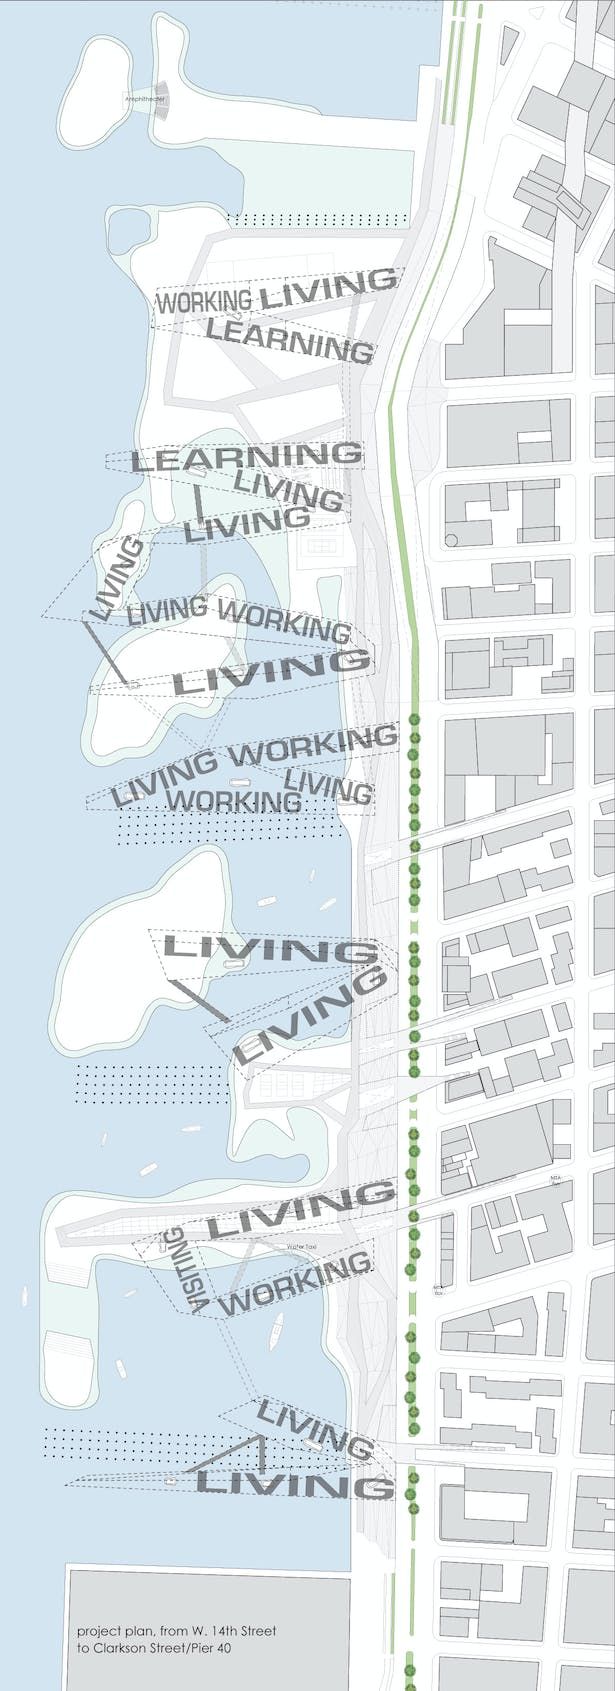 project plan from W. 14th Street to Clarkson Street/Pier 40